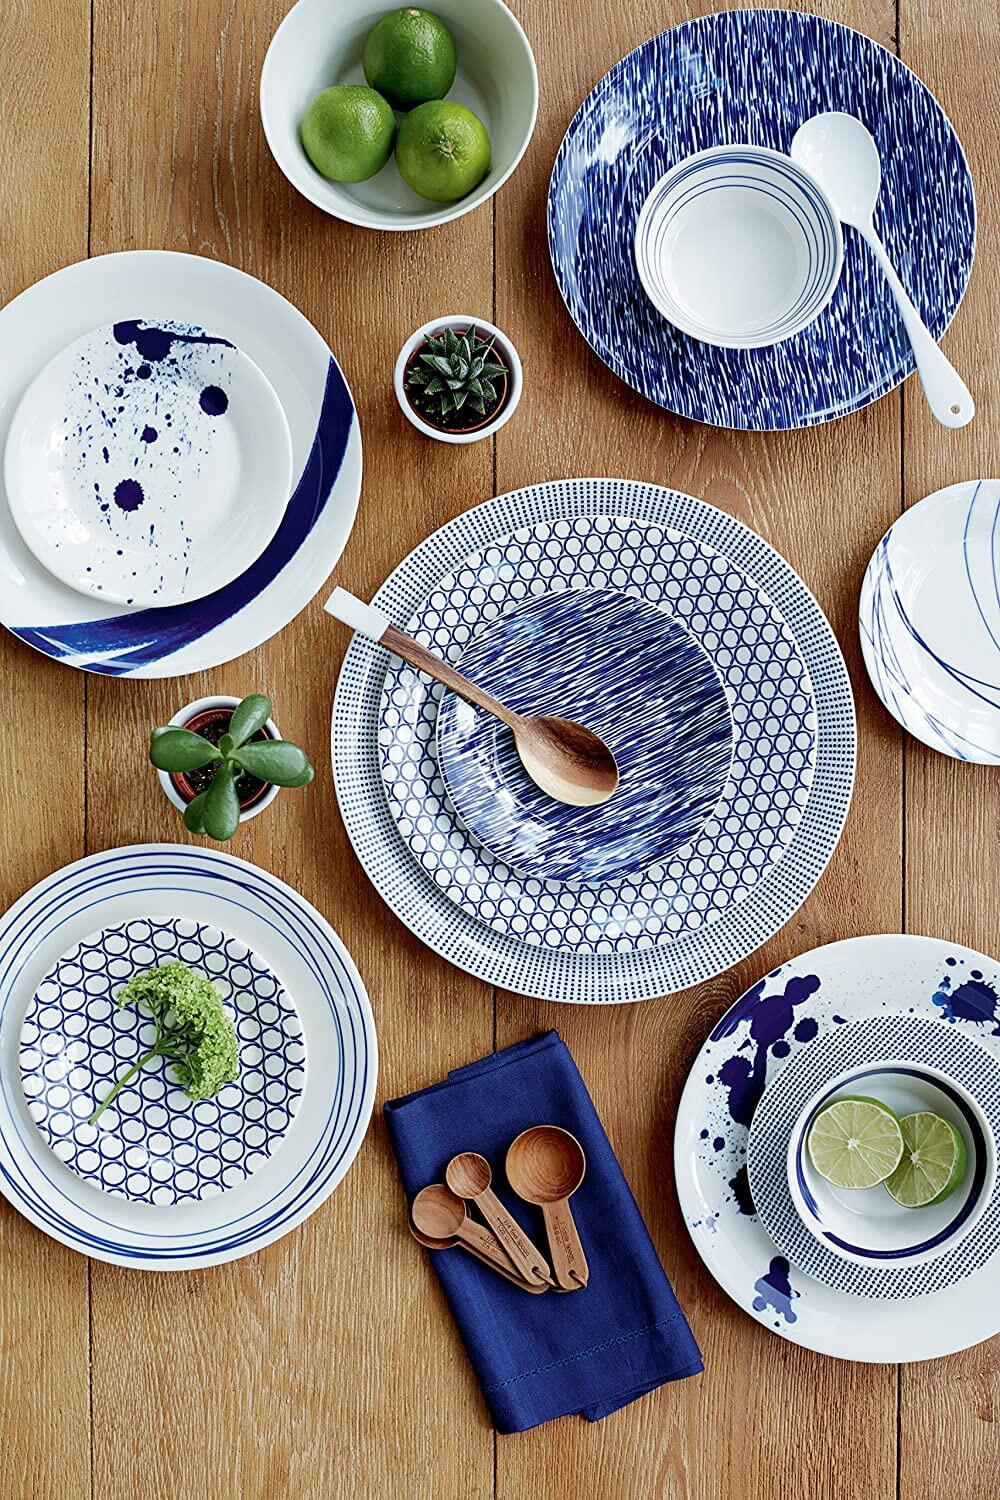 Pretty blue patterned plates displayed as a way to make healthy food taste good